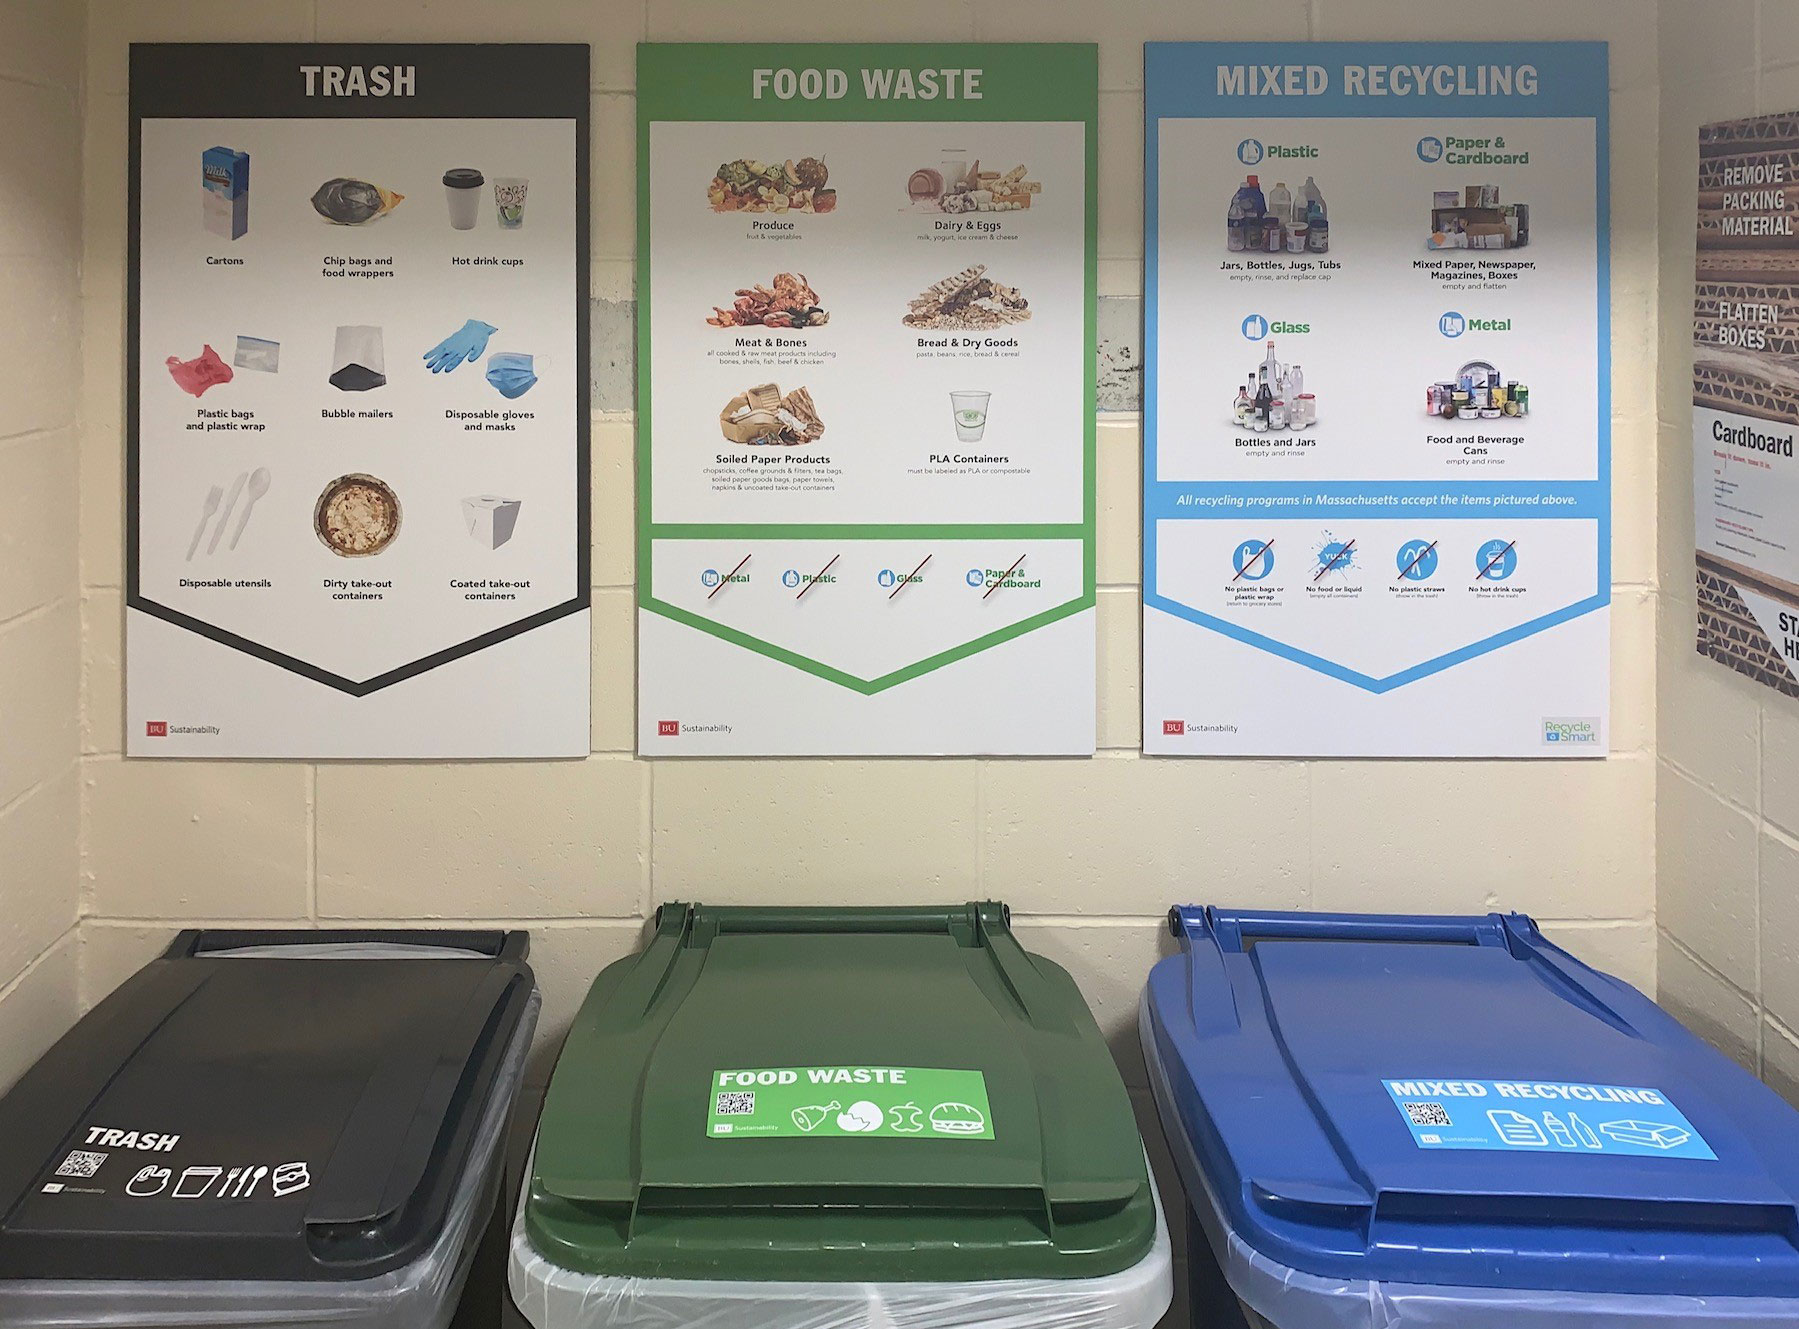 New waste bins in student residences are part of the Zero Waste Plan